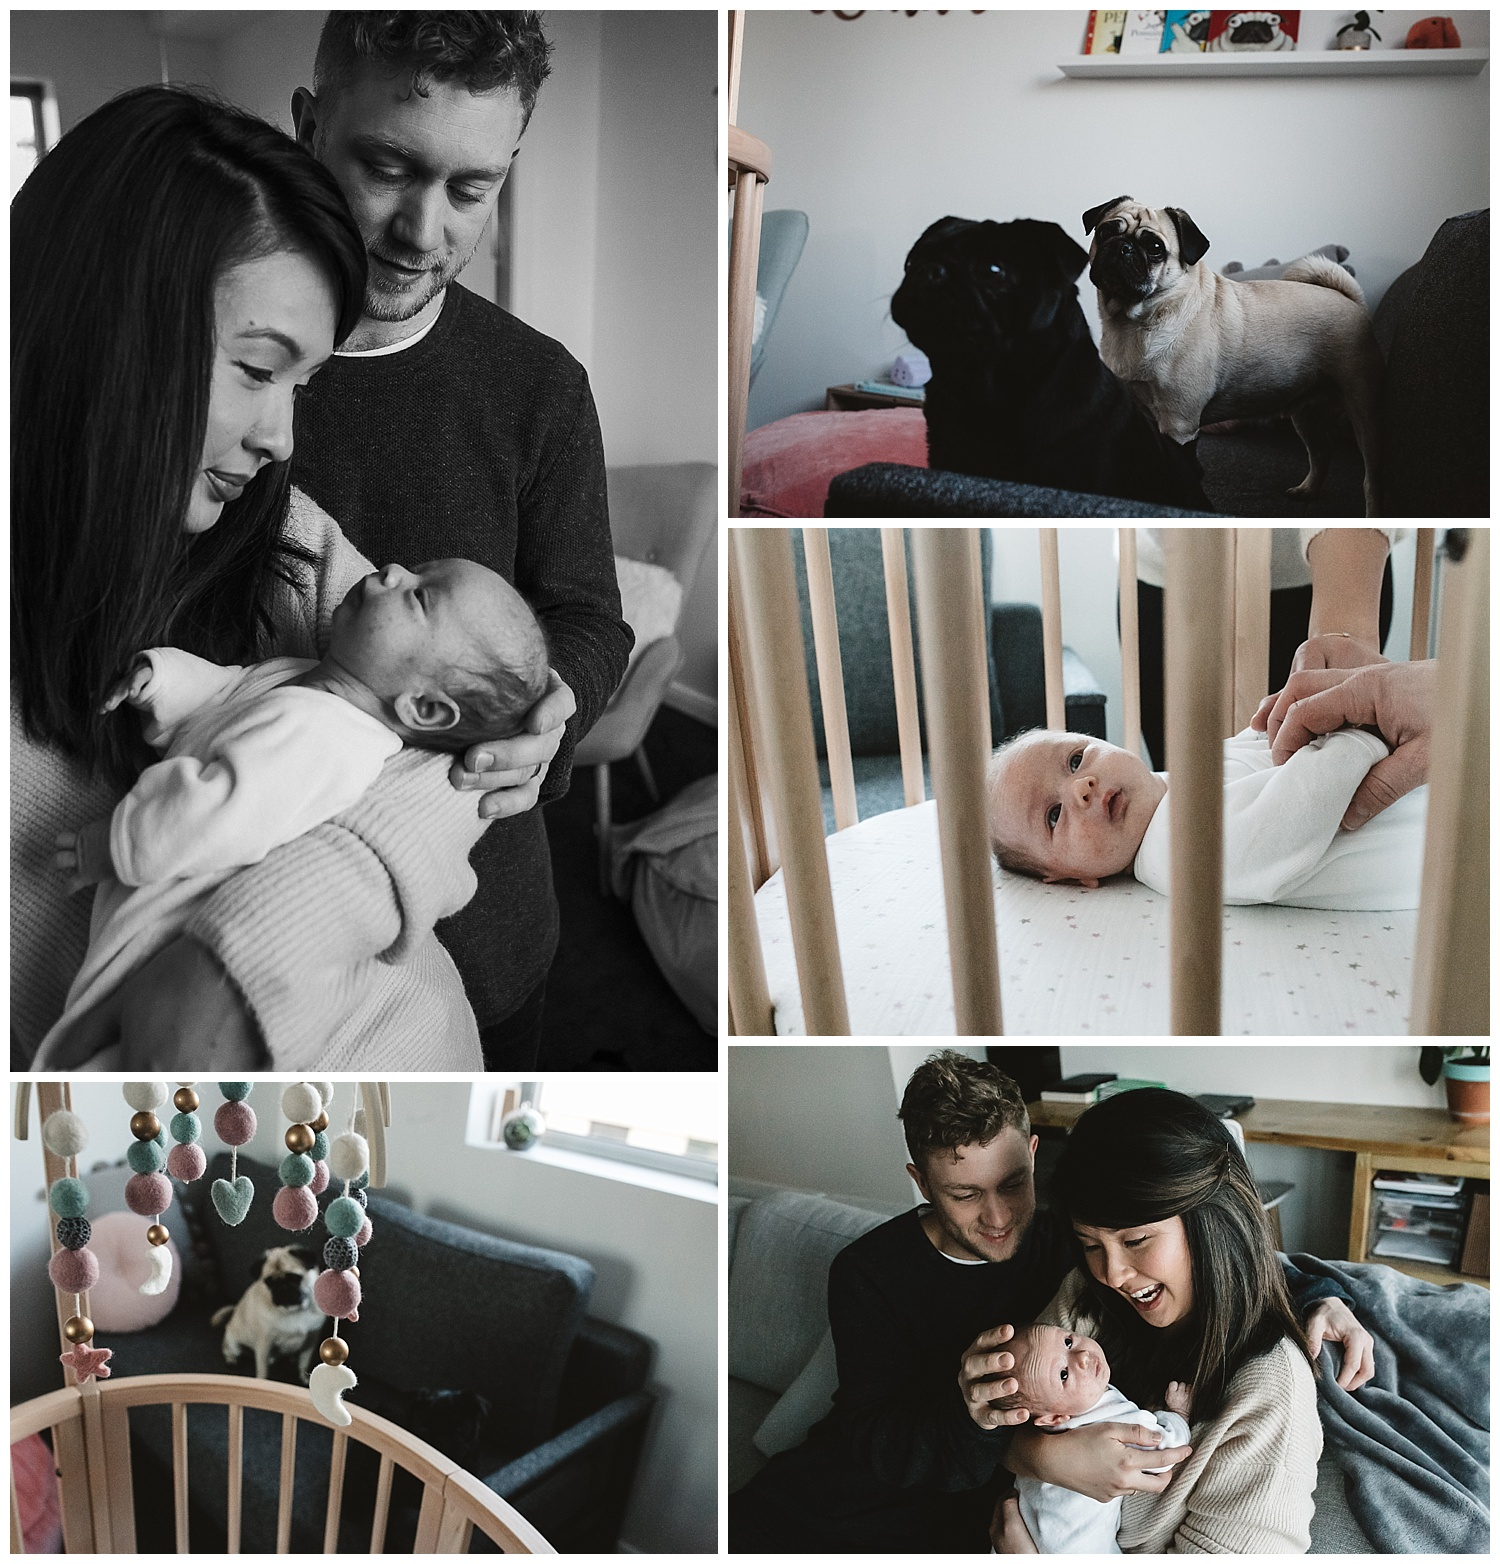 melbourne newborn photography family feeding small baby near cot